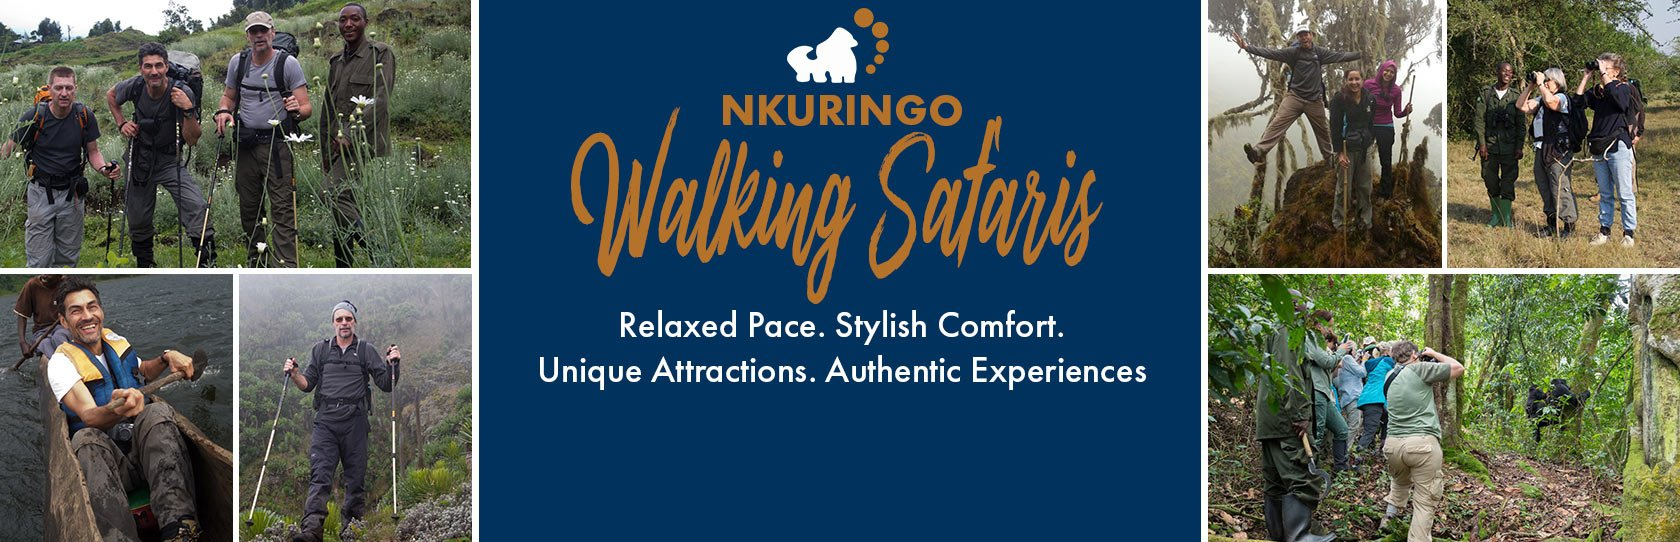 Nkuringo Hiking and Walking Safaris